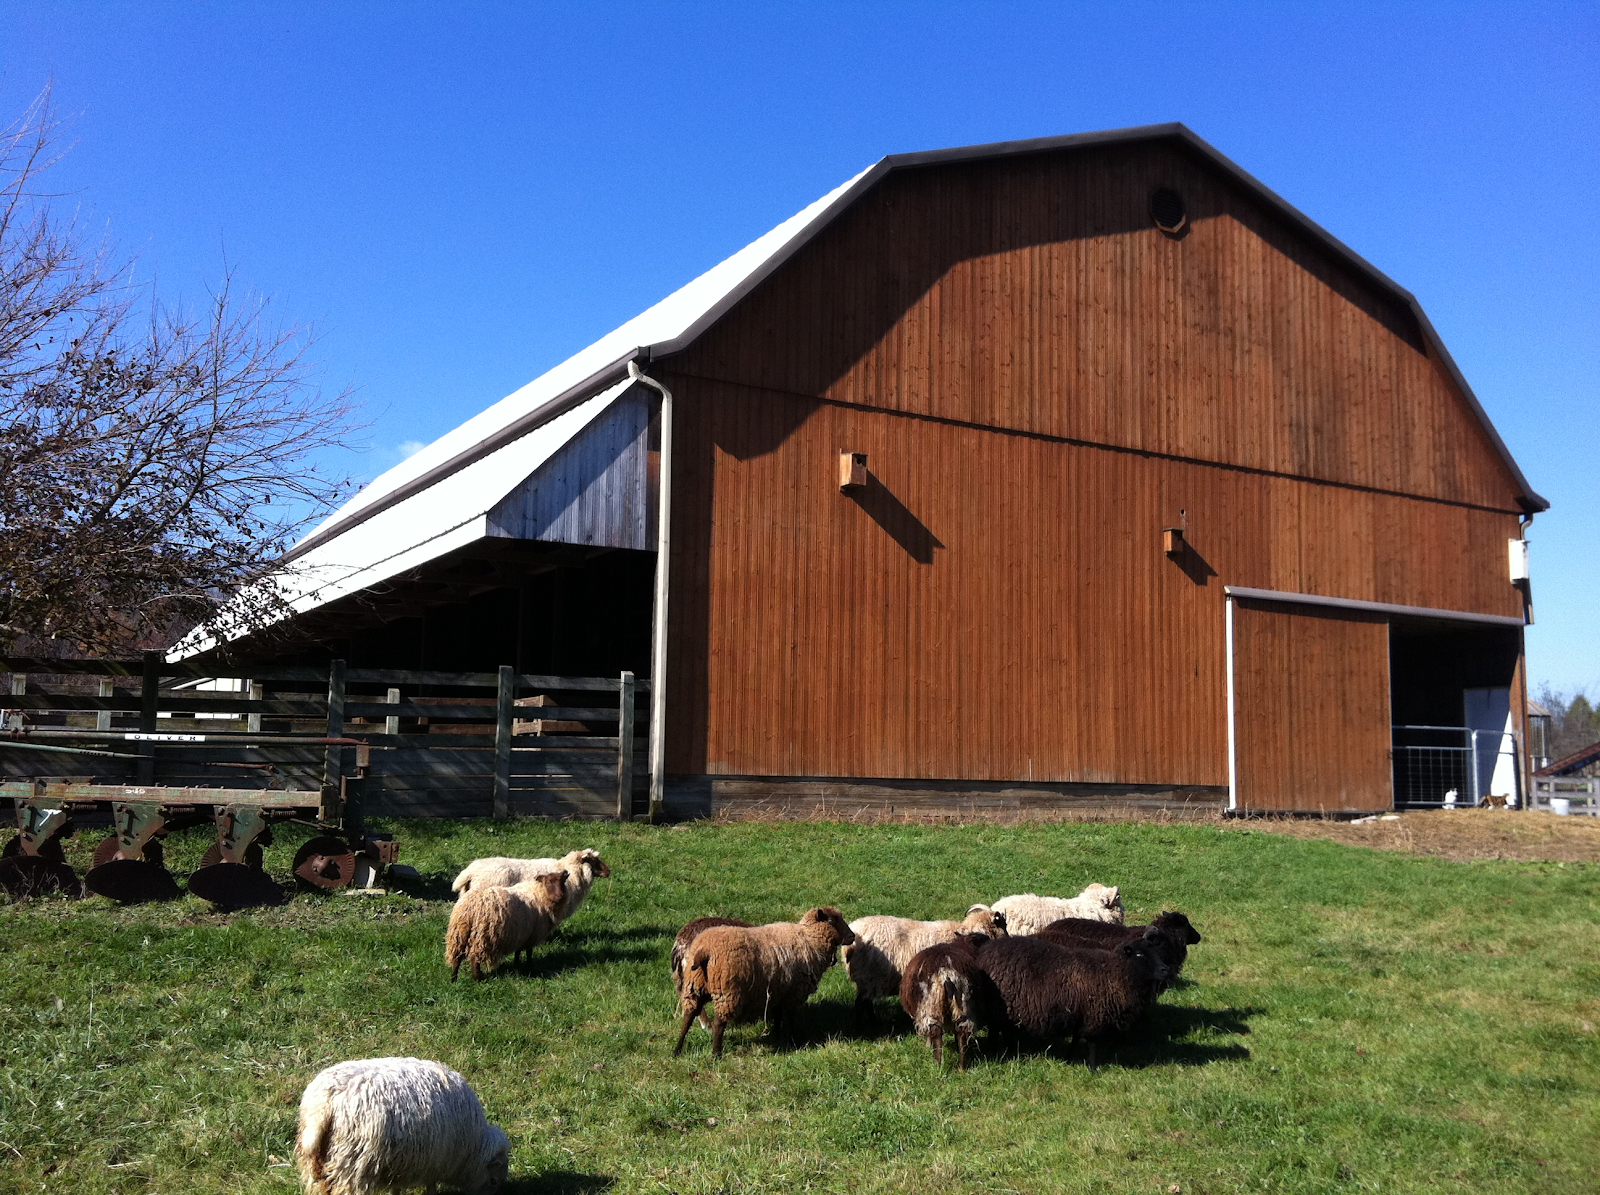 Sheep and a barn at Stratford Ecological Center in Delaware, Ohio